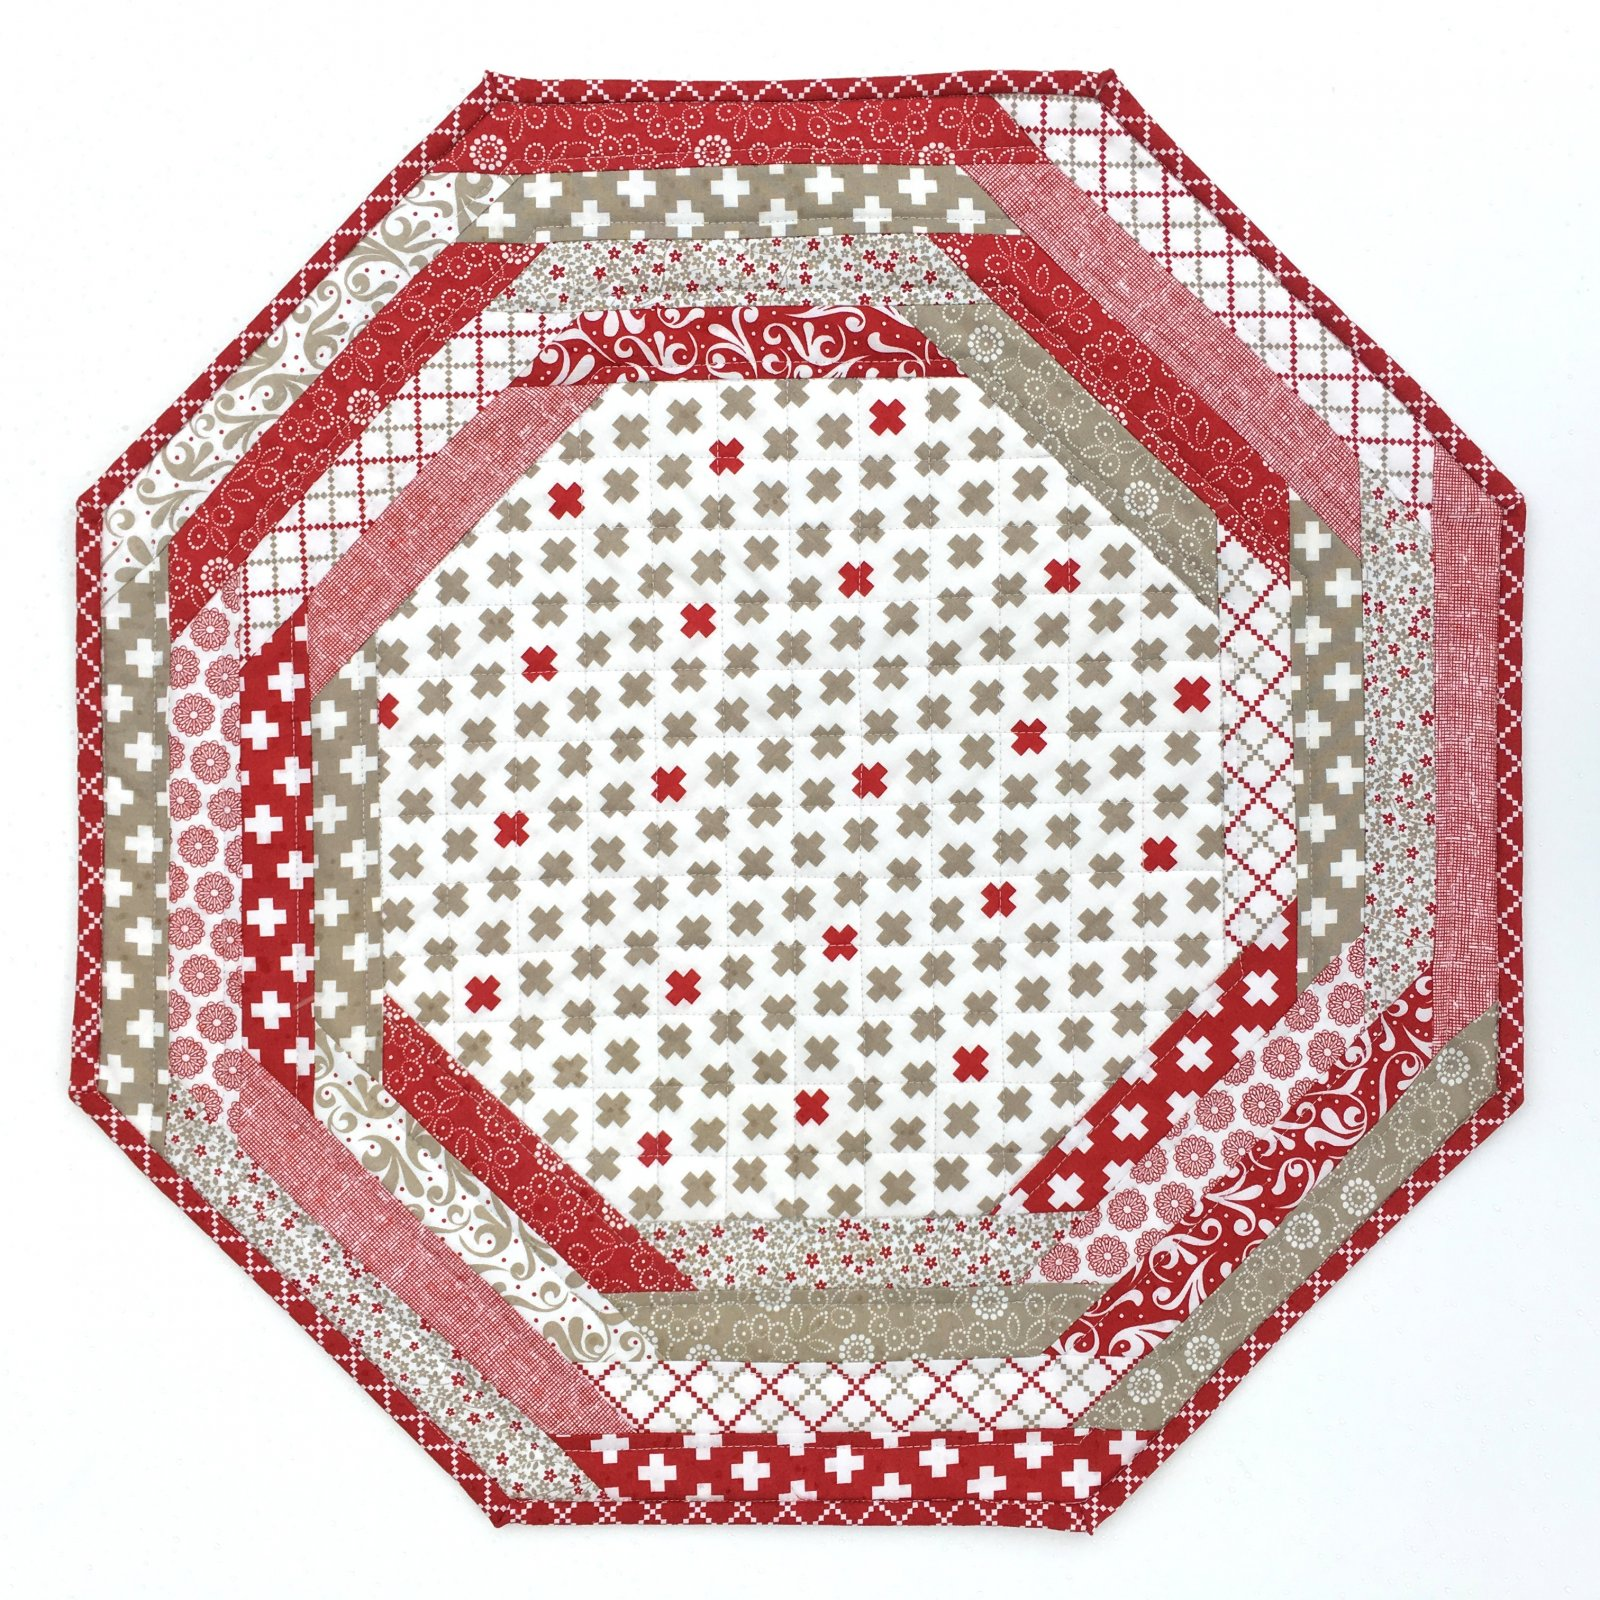 Centerpiece Tablemat - project red